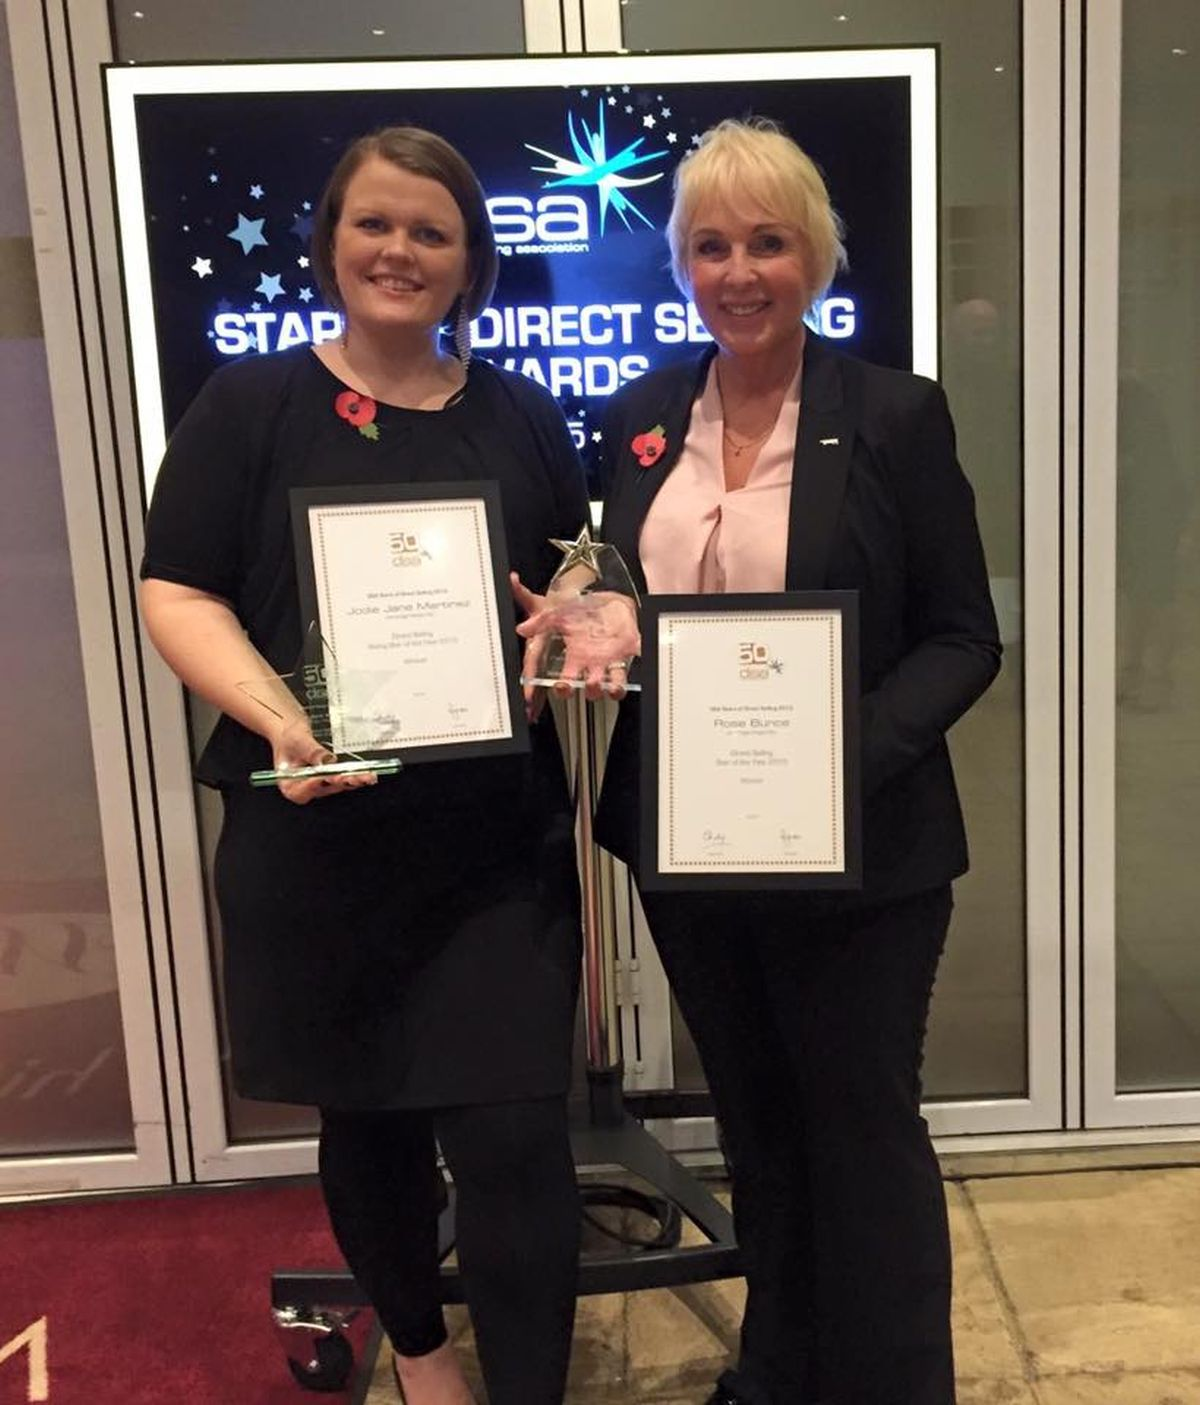 SELLING STARS: Jodie Martinez and Rose Bunce with their Direct Selling Association Star Awards (45717256)